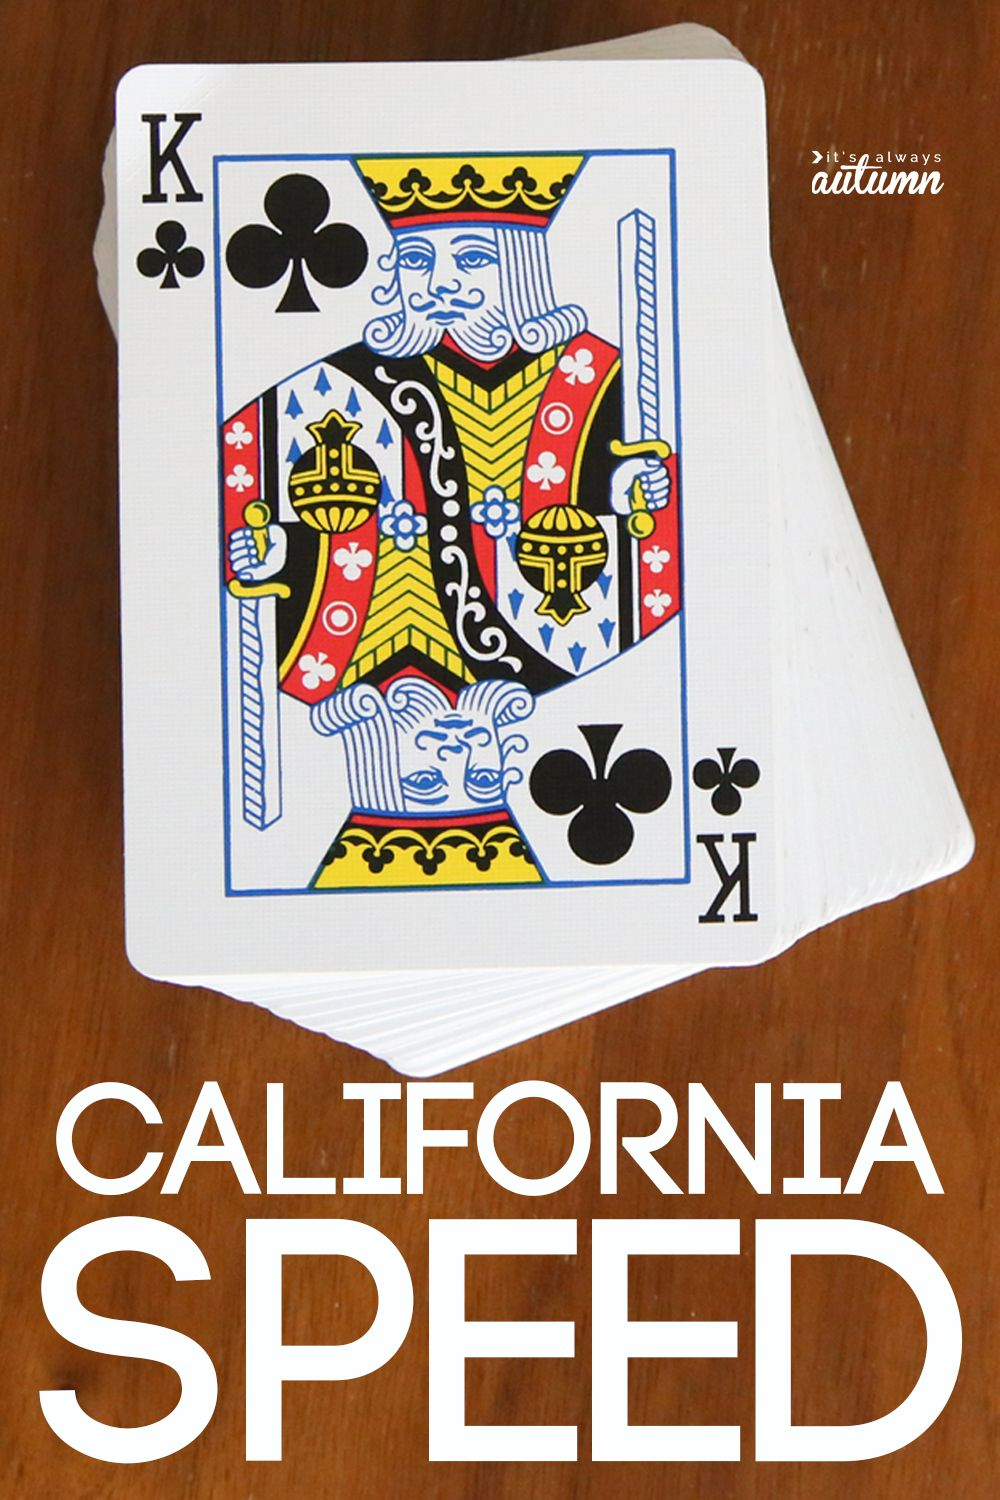 How To Play California Speed Fun Card Games Card Games Card